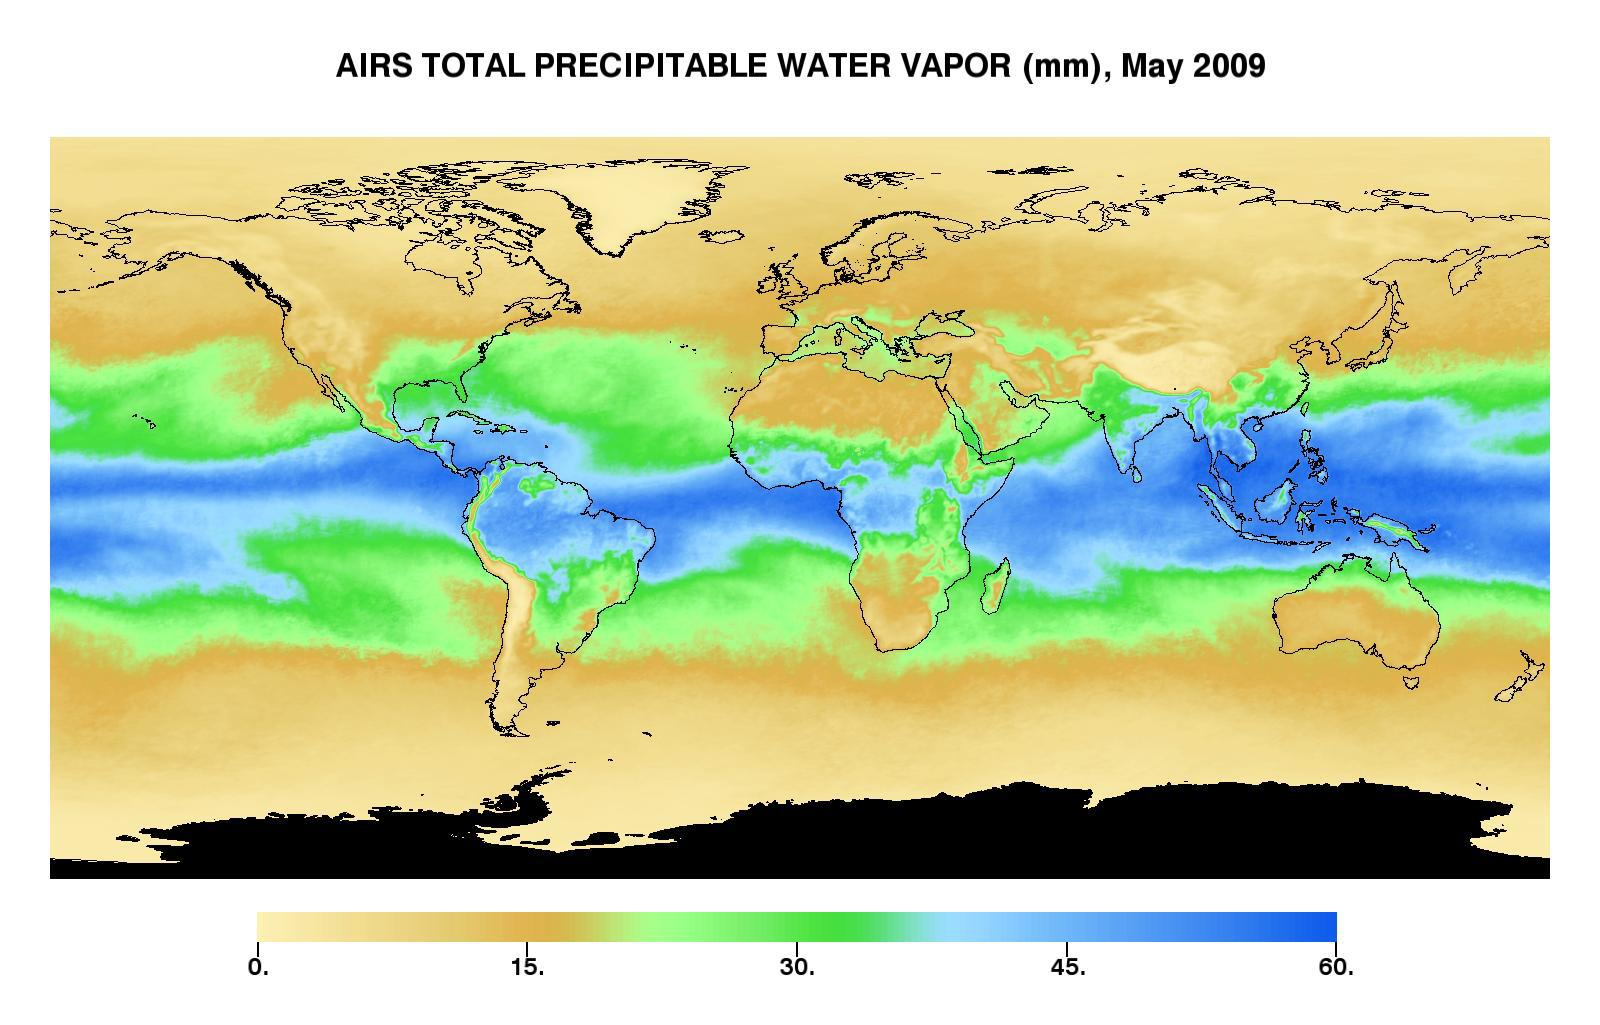 Water Vapor Map Space Images | Global Total Precipitable Water Vapor for May 2009